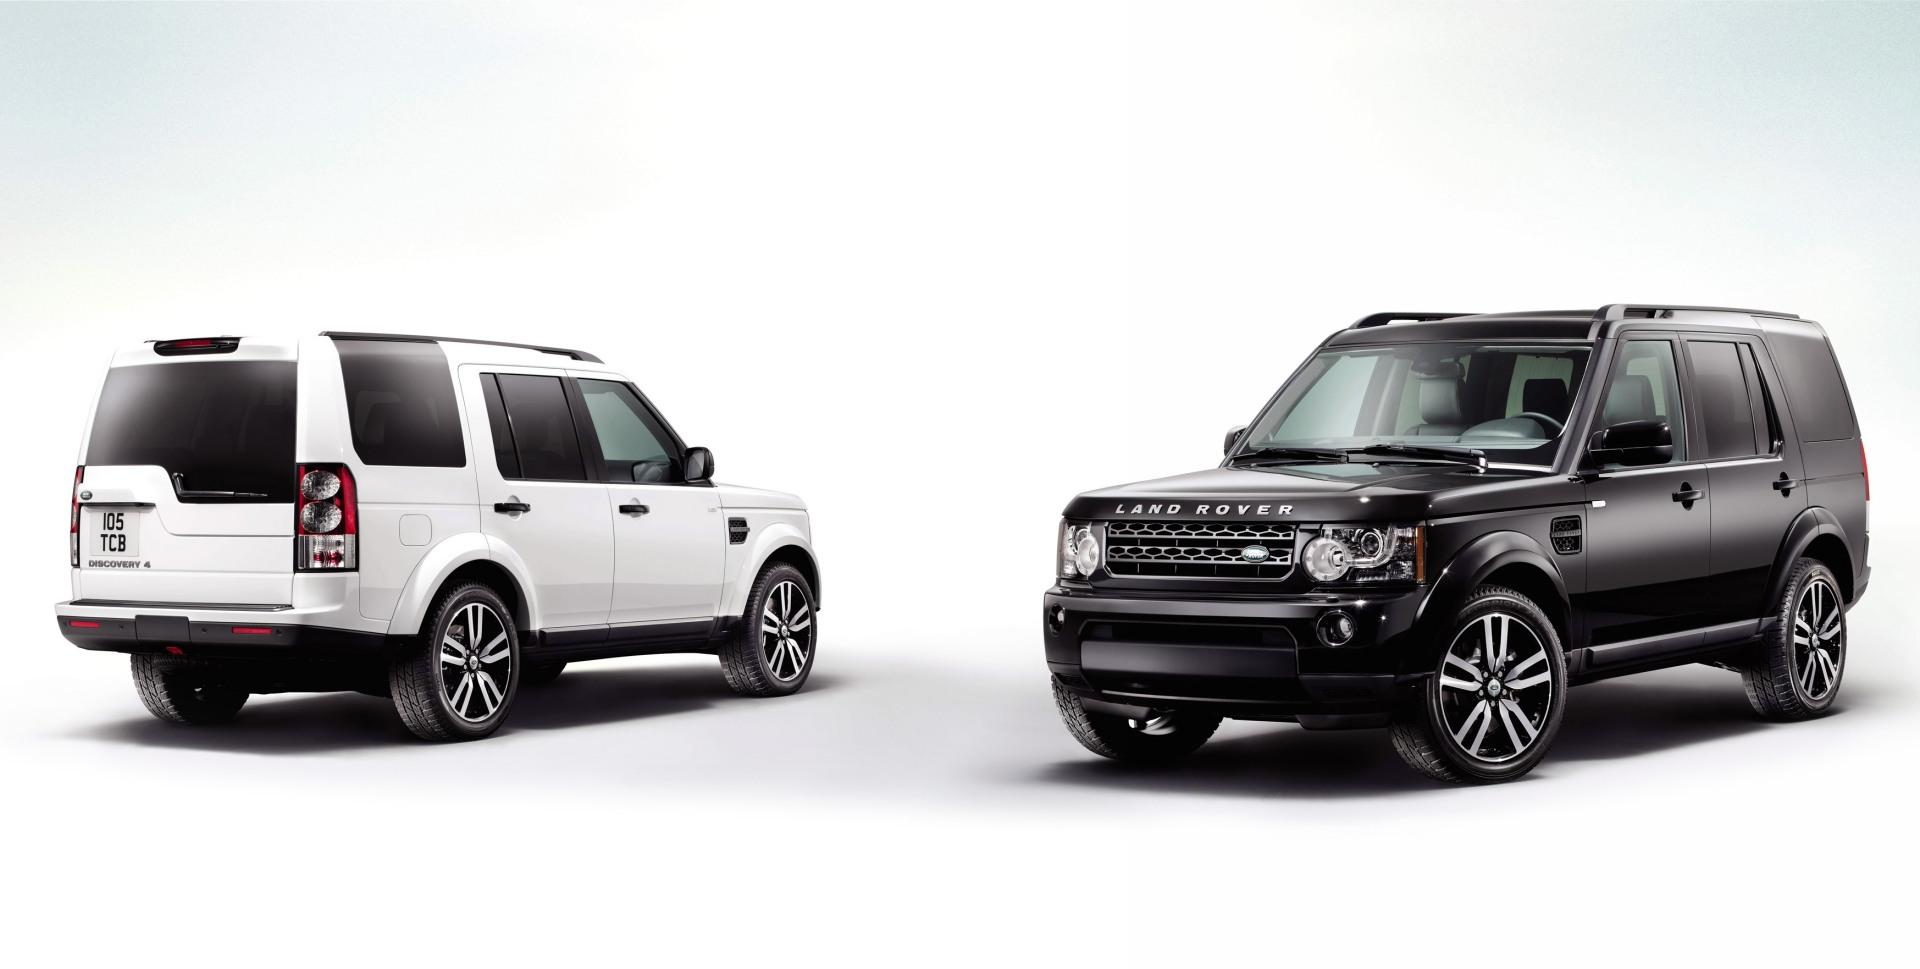 2010 Land Rover Discovery 4 Landmark Limited Editions